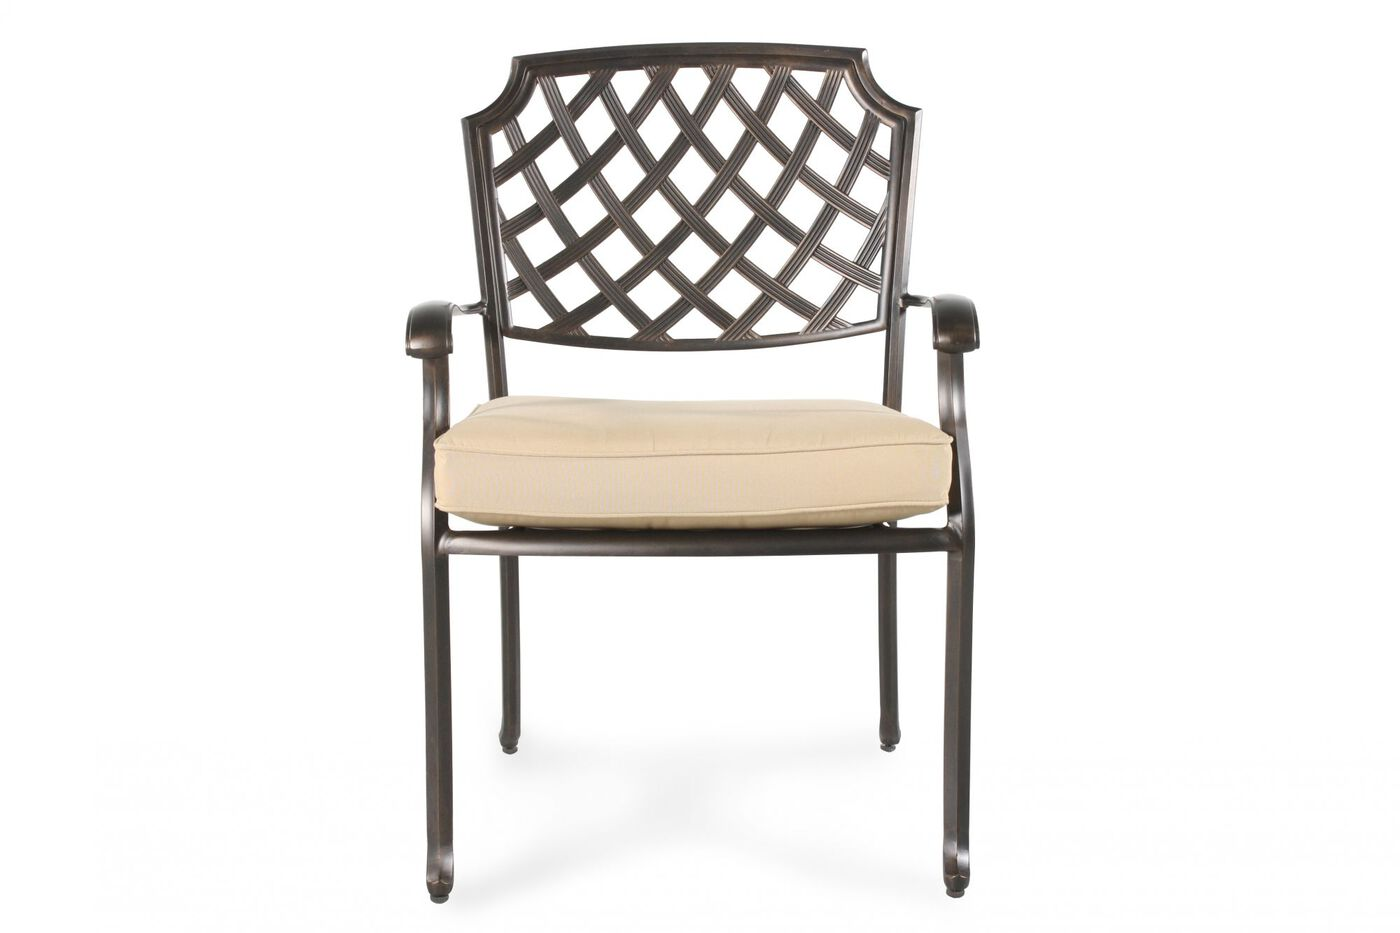 Agio Heritage Select Patio Dining Chair